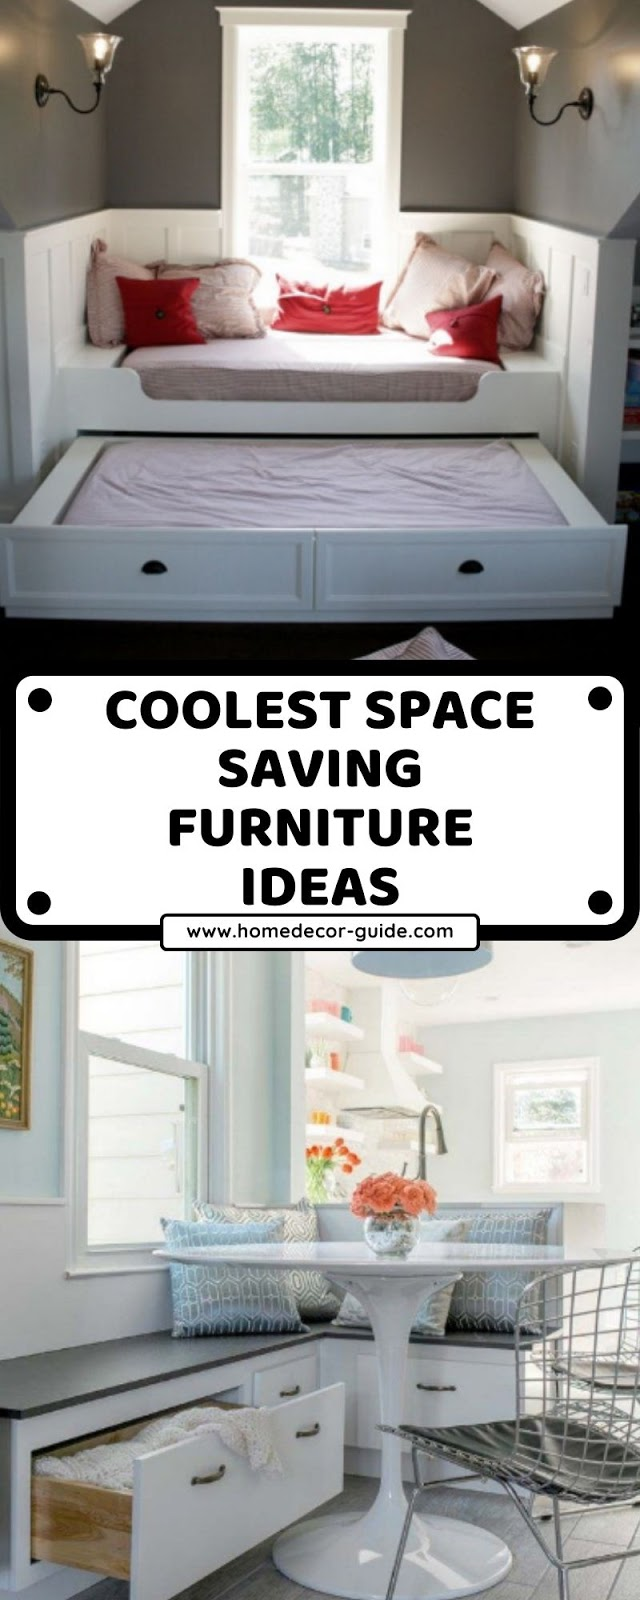 COOLEST SPACE SAVING FURNITURE IDEAS